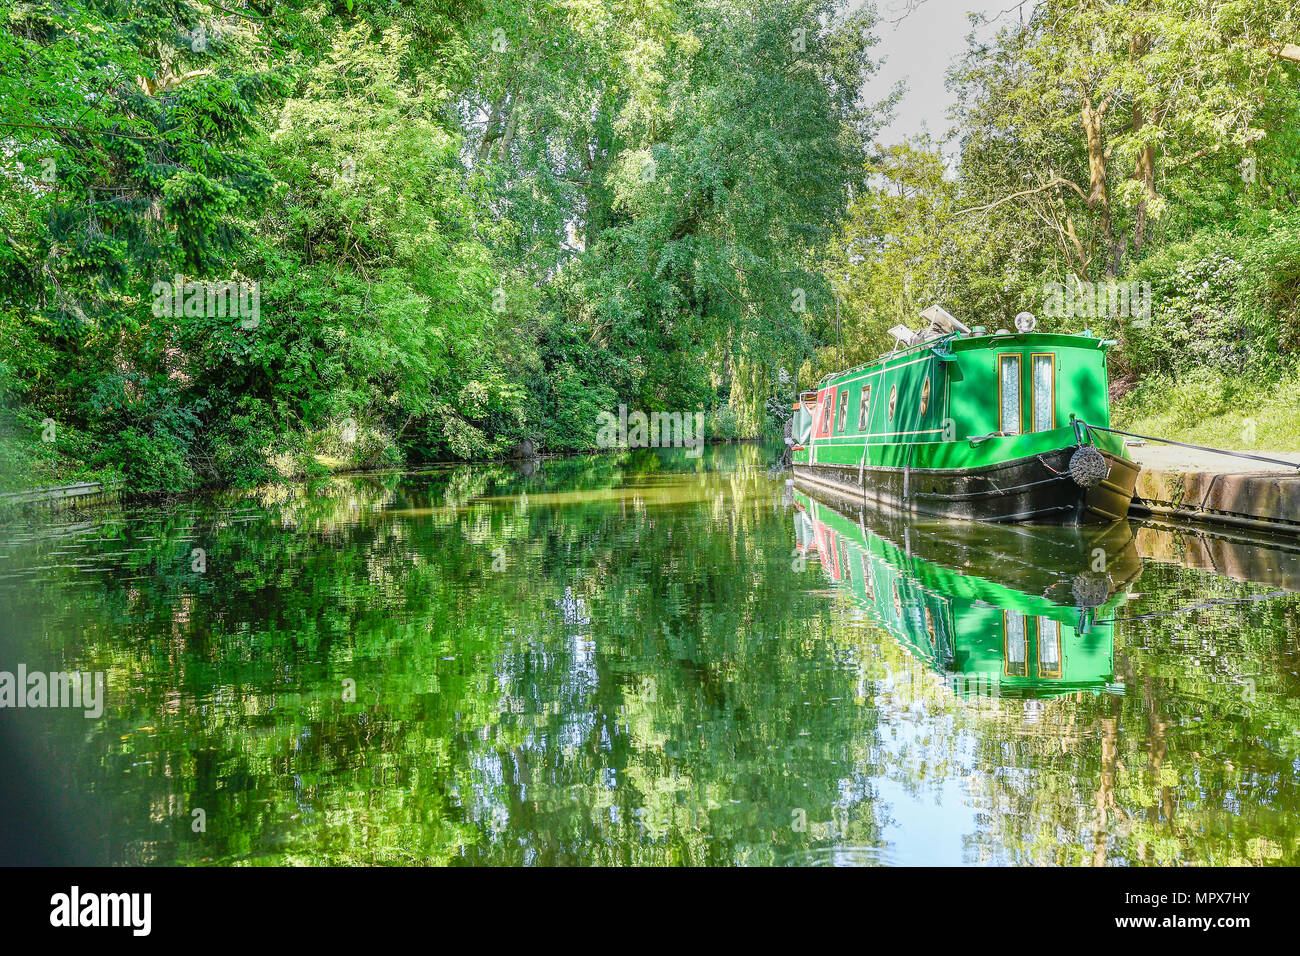 Narrowboat moored to the towpath on a sunny spring day at the Market Harborough arm of the Grand Union canal, England. - Stock Image